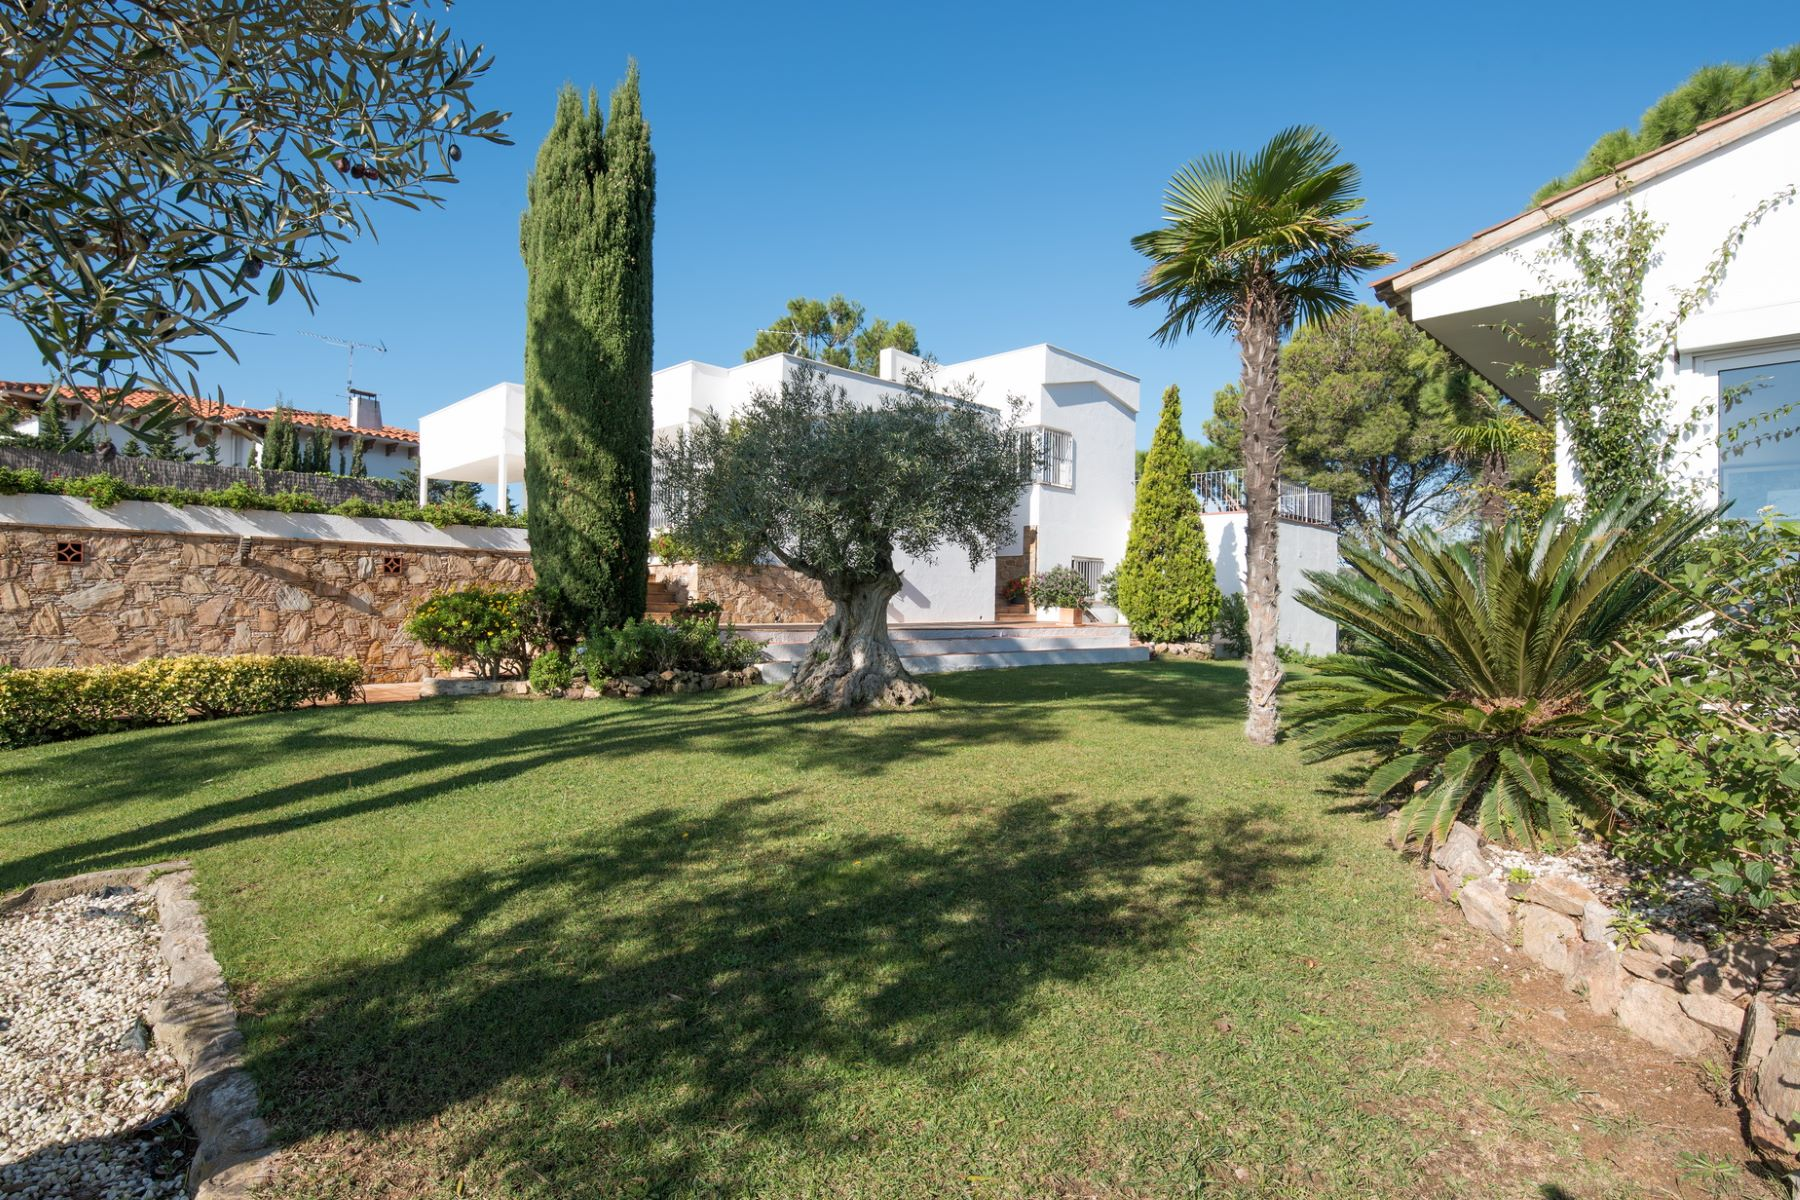 Single Family Home for Sale at Beautiful house for sale with spectacular view between Aiguablava and Tamariu Begur, Costa Brava, 17255 Spain